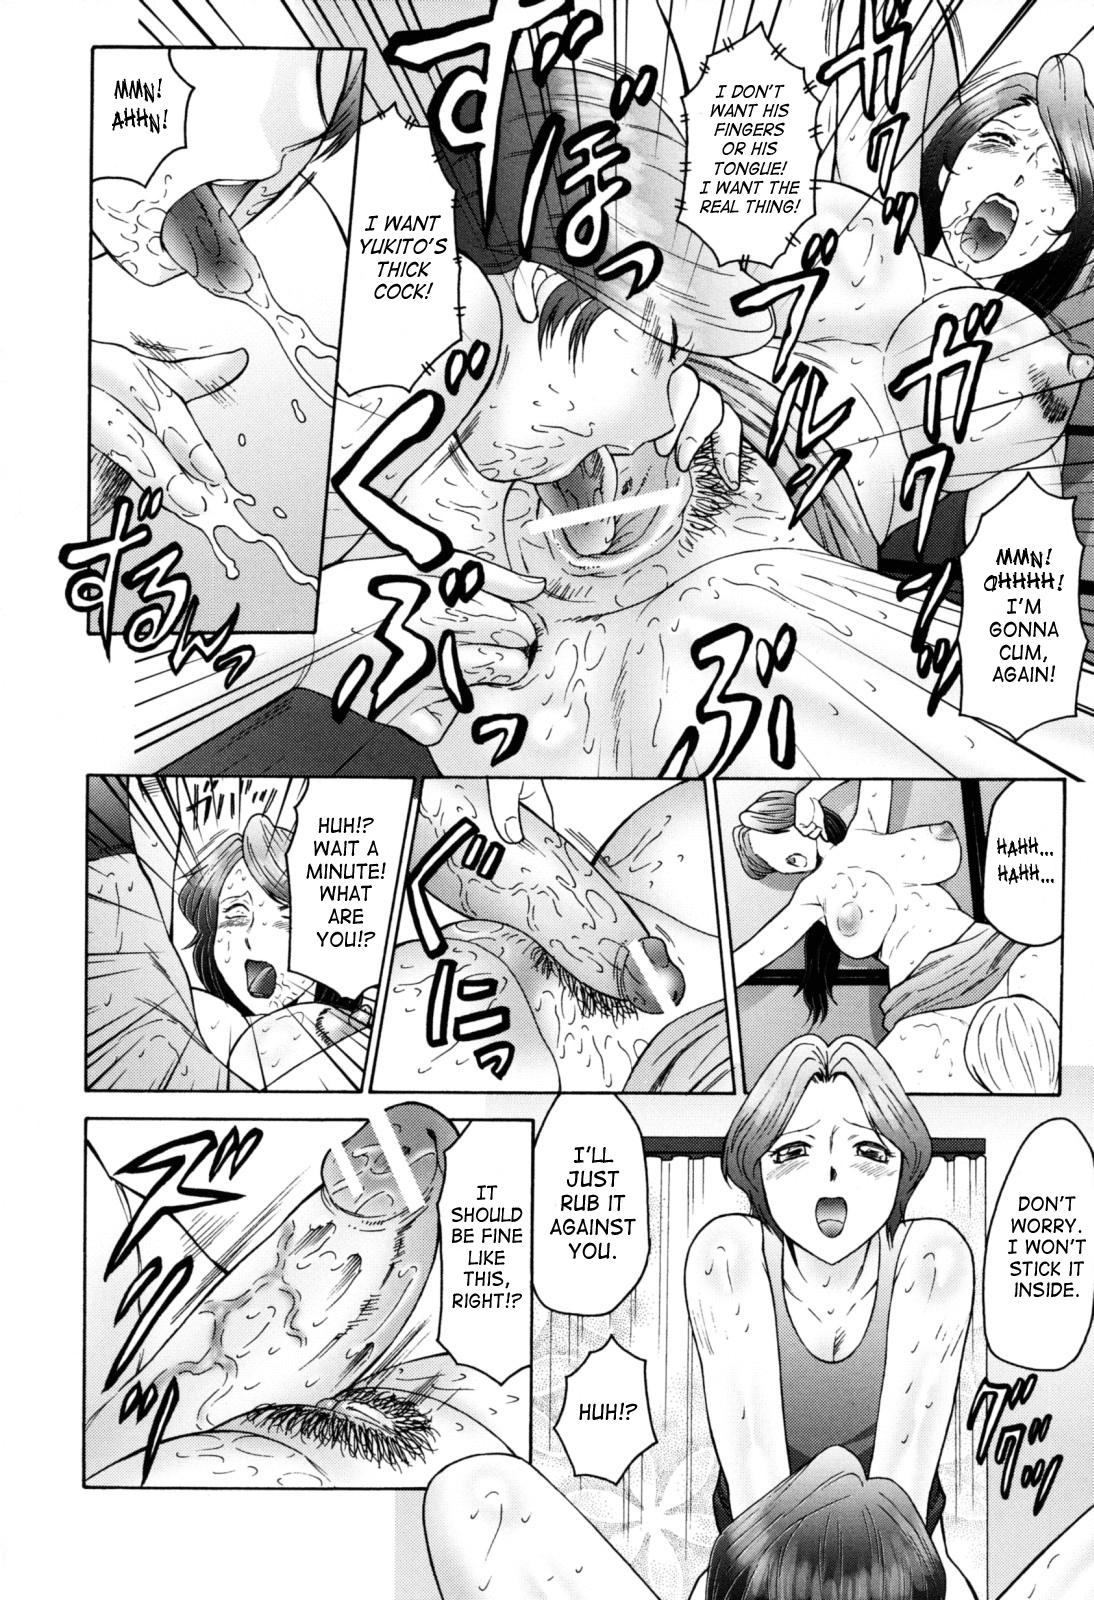 [Fuusen Club] Boshino Toriko - The Captive of Mother and the Son | Enslaved Mother and Son Ch. 1-5 [English] [SaHa] 79